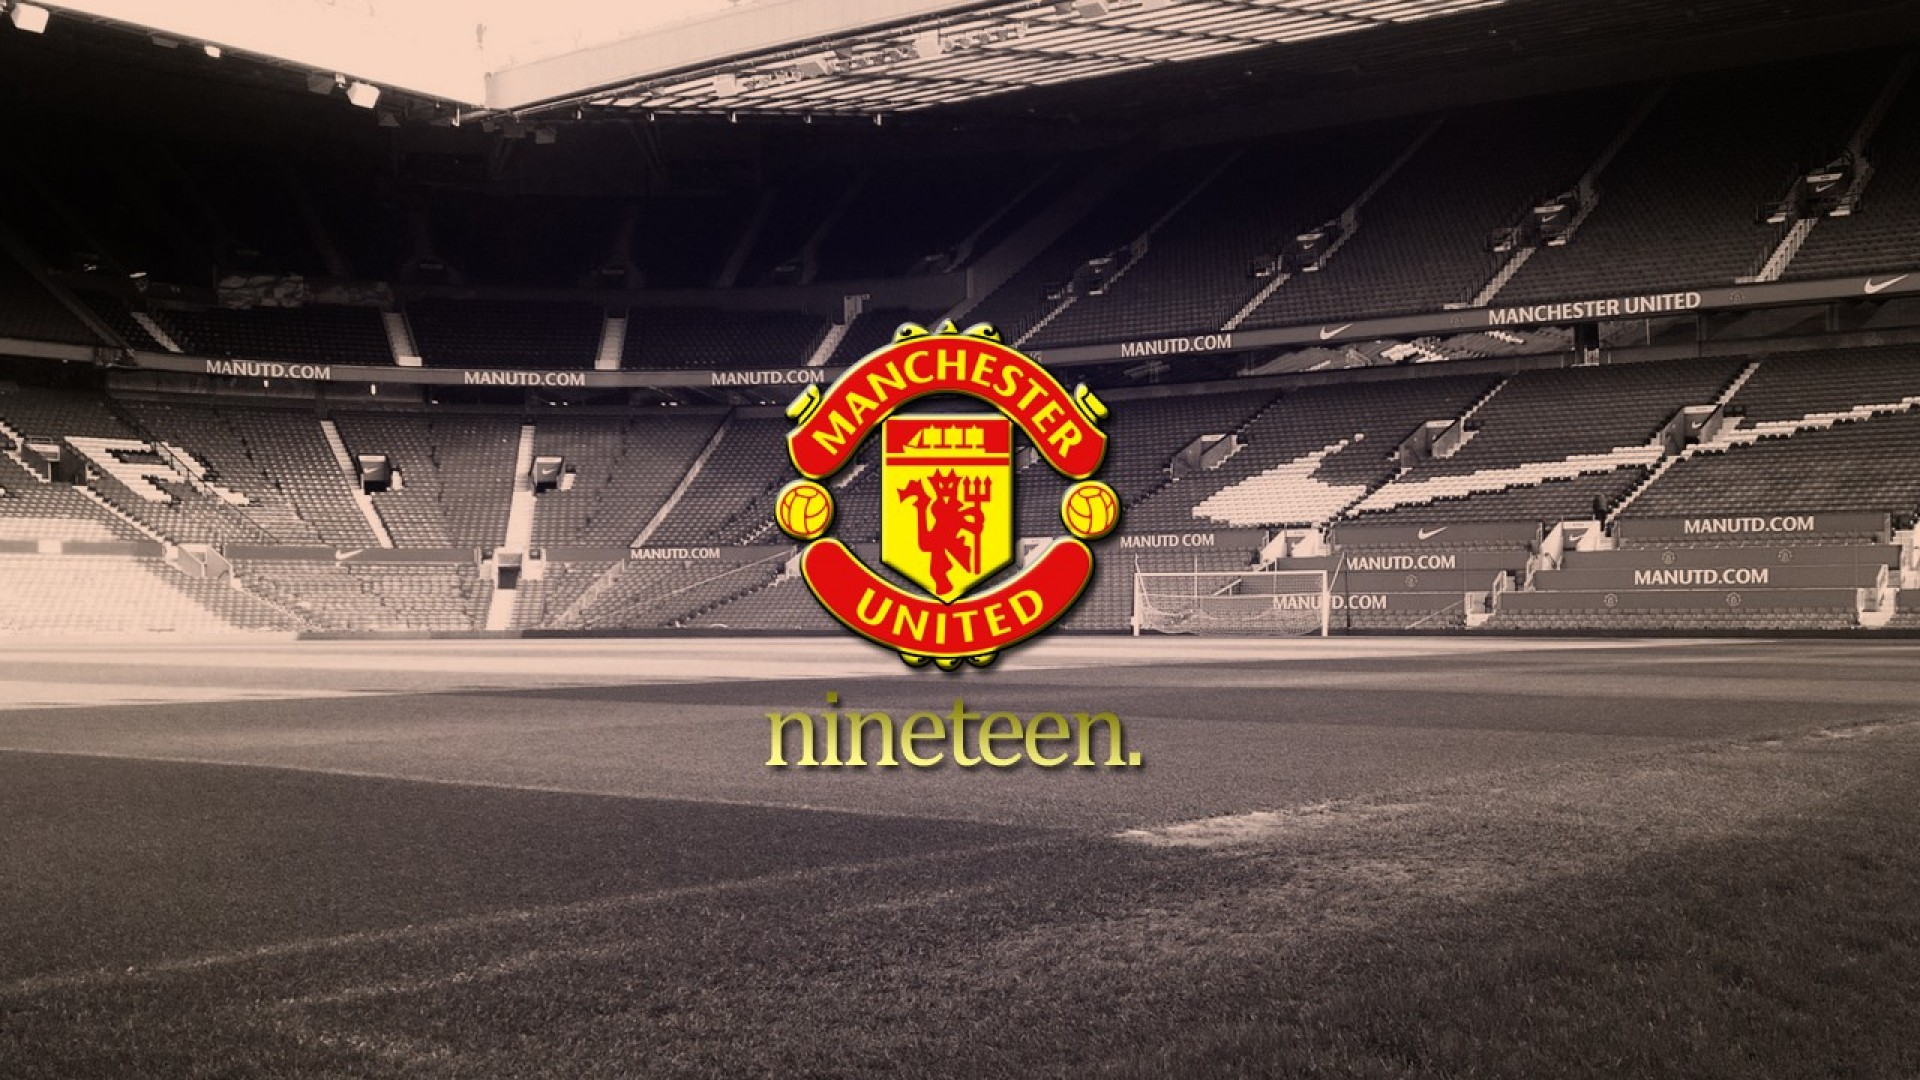 football wallpaper manchester united - photo #9